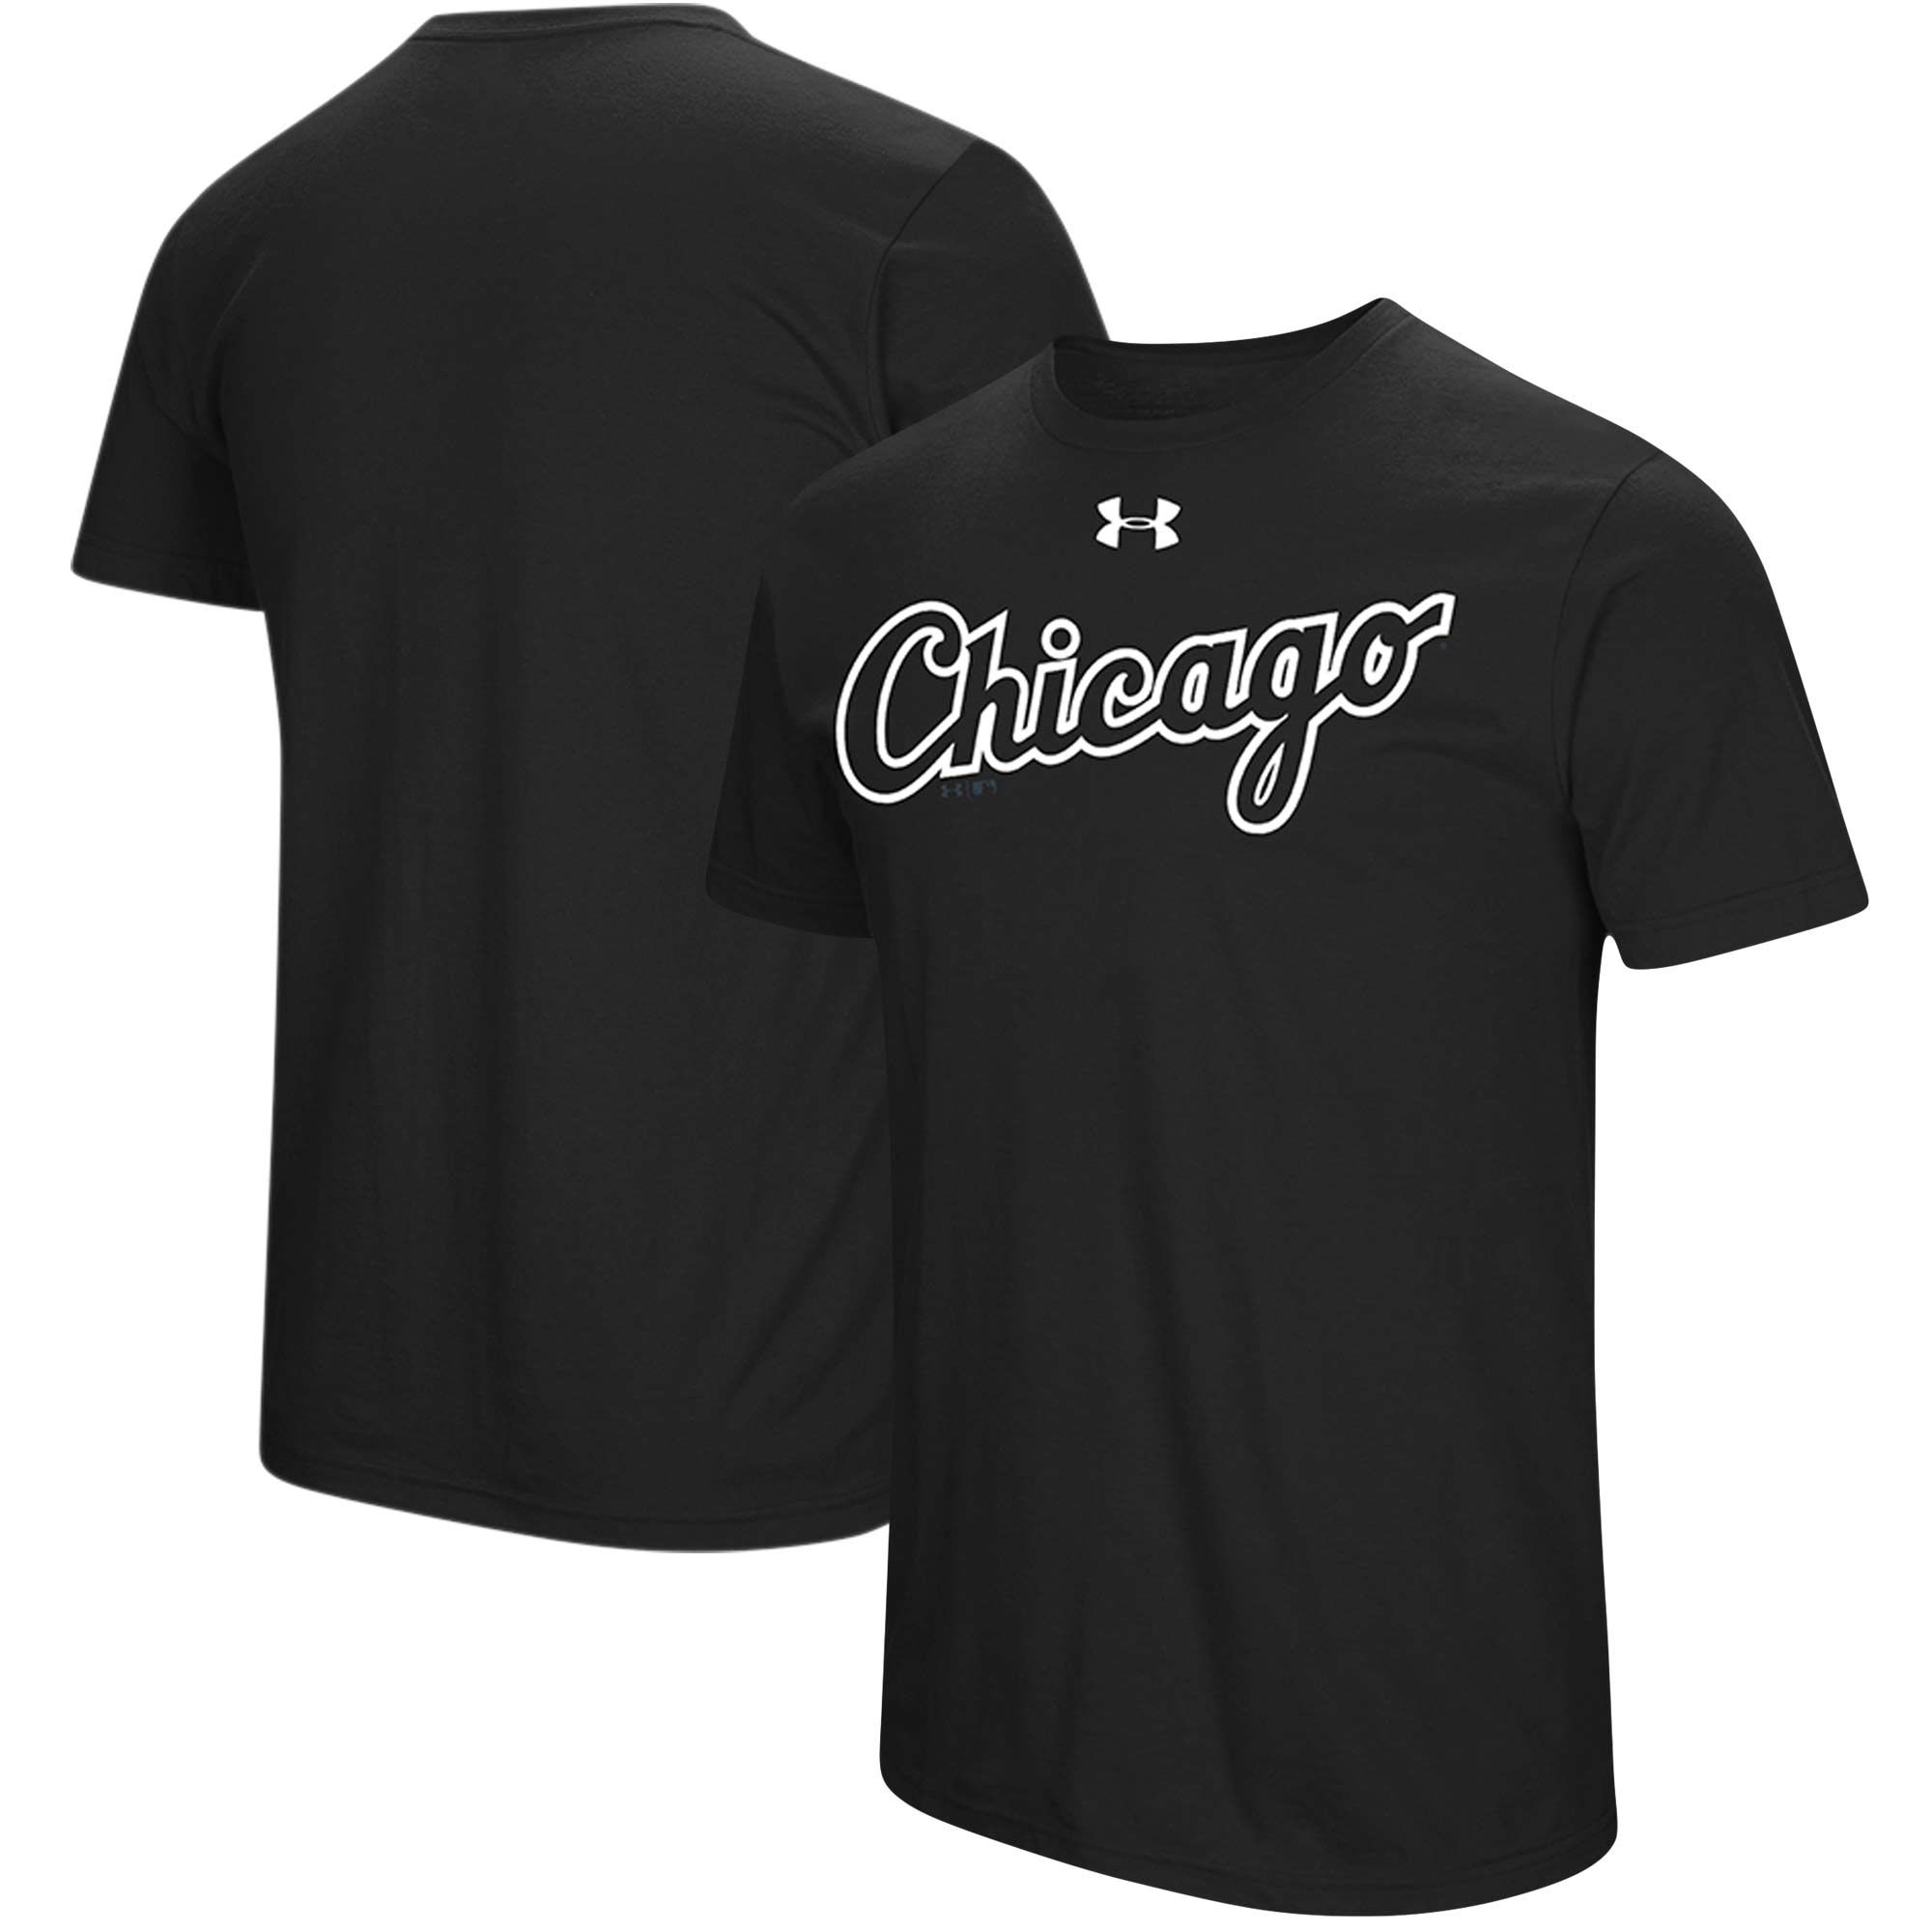 Chicago White Sox Under Armour Passion Road Team Font T-Shirt - Black